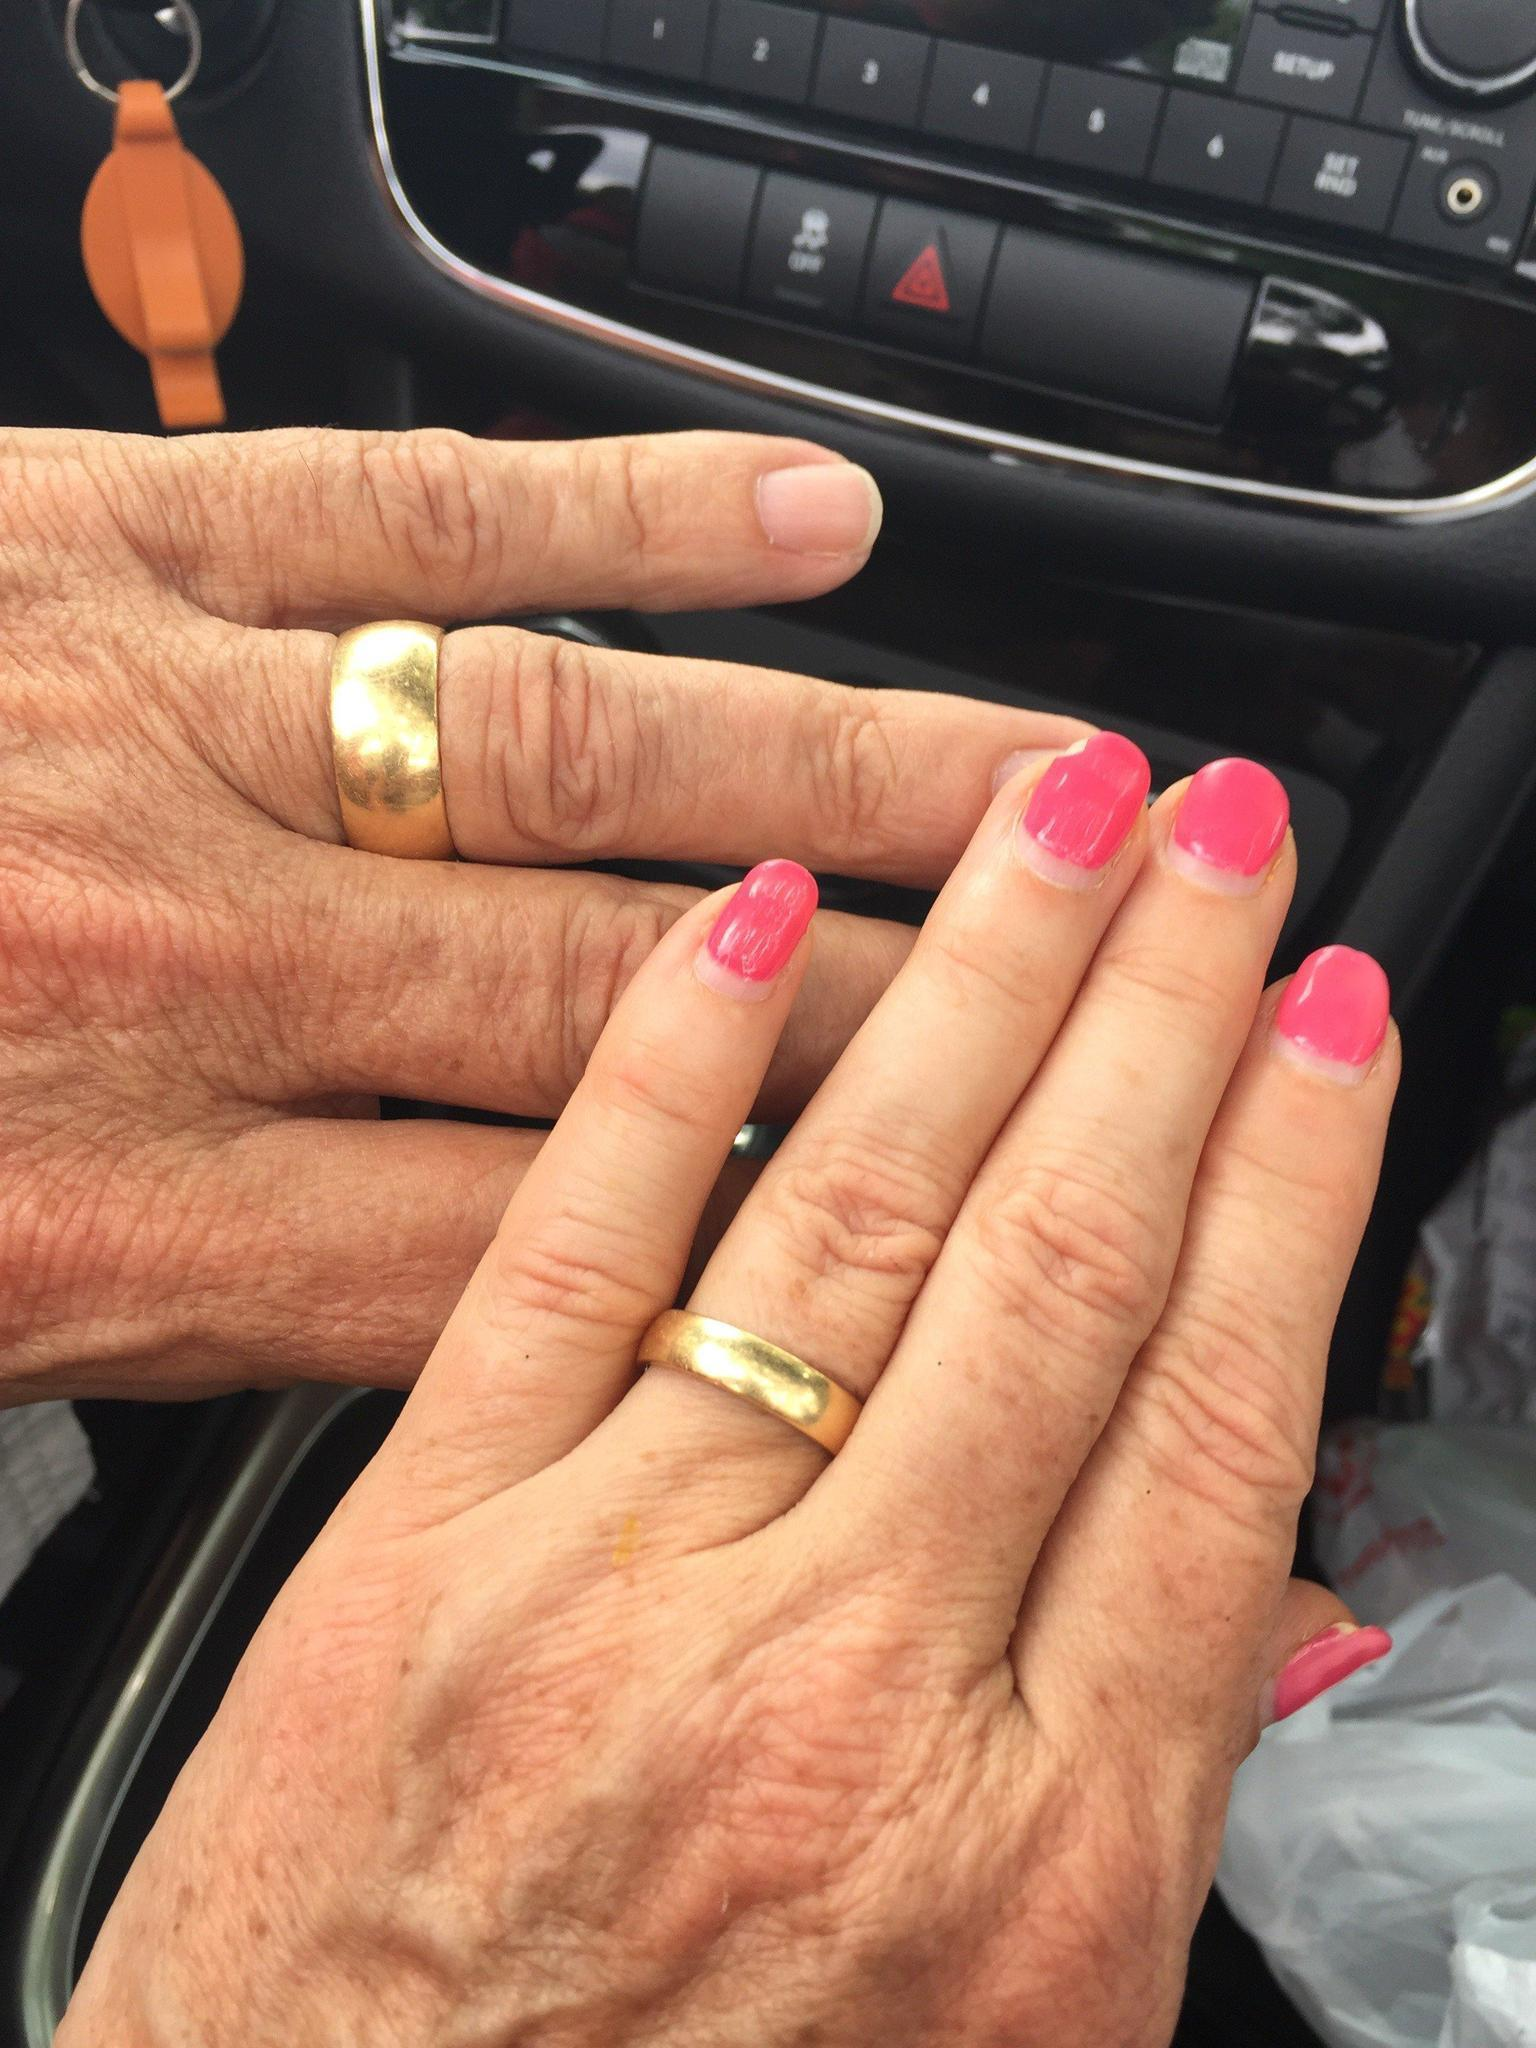 Naperville councilwoman turns to Facebook to find lost wedding ring ...